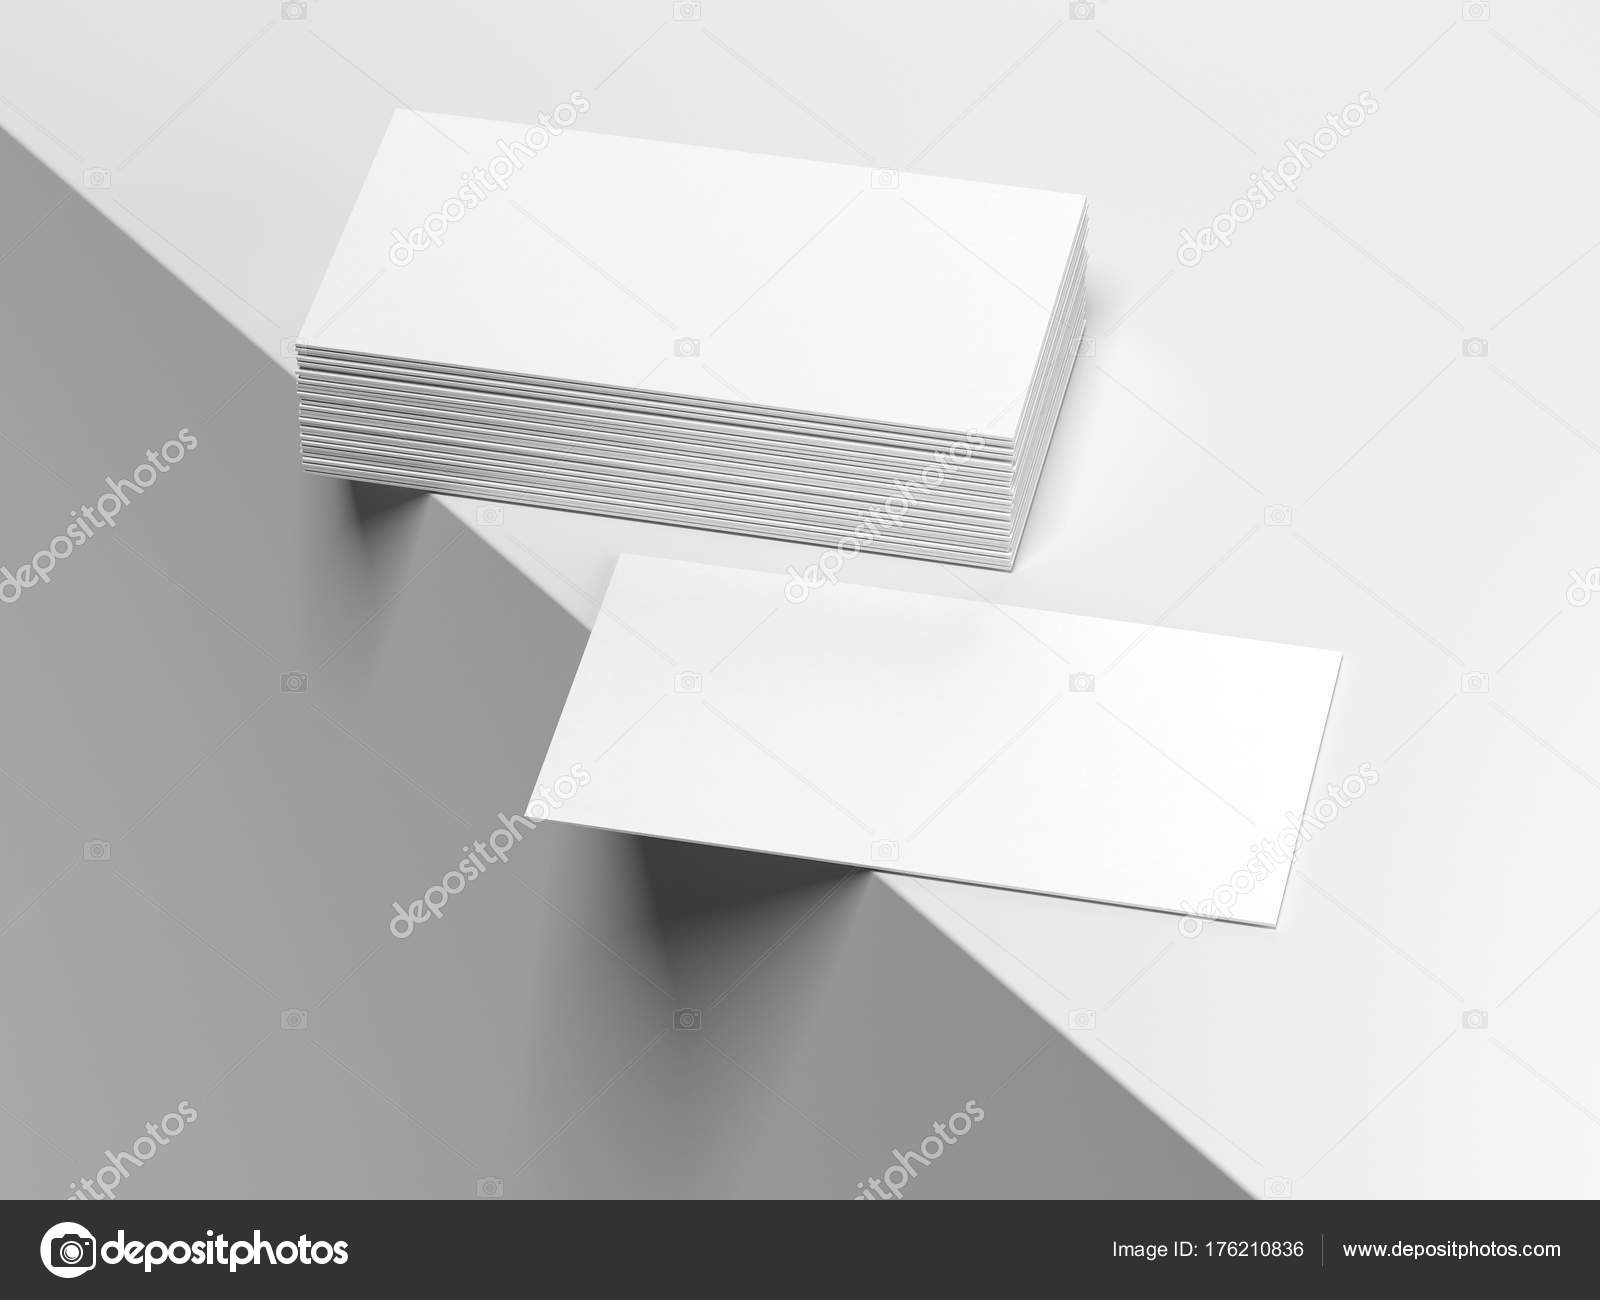 Blank white business cards 3d rendering stock photo ekostsov blank white business cards on the edge of surface 3d rendering photo by ekostsov reheart Image collections